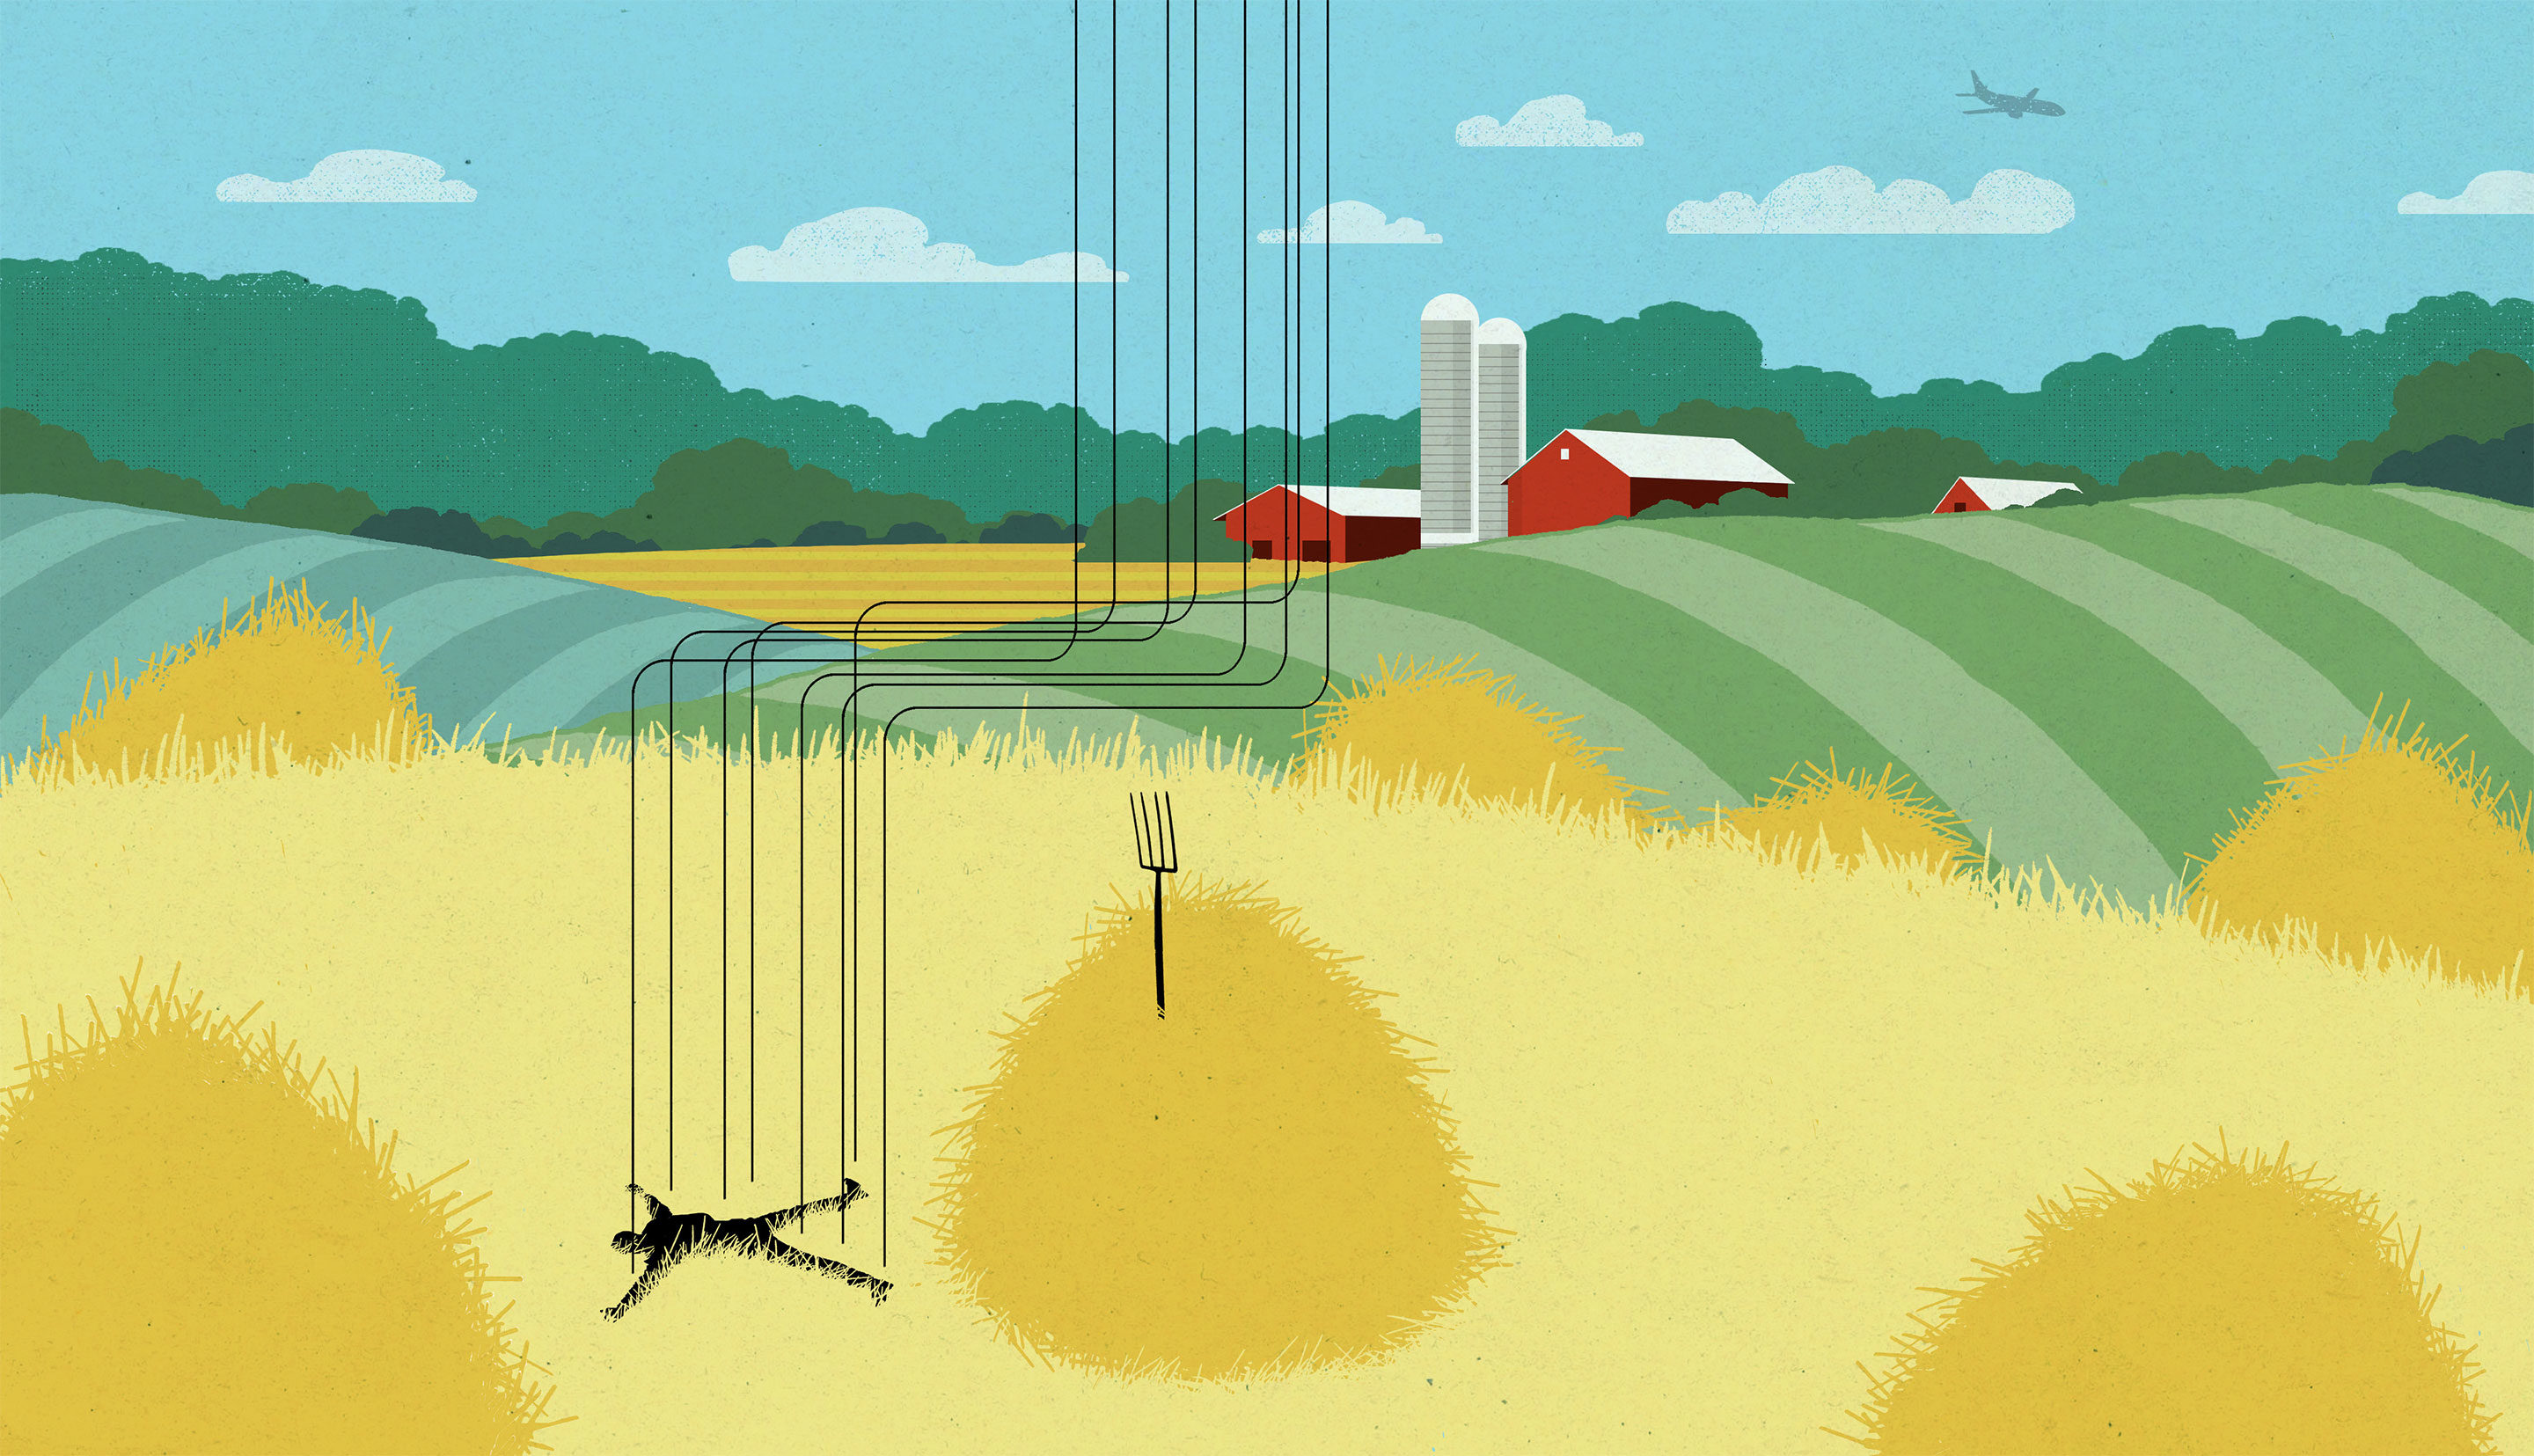 Lede illustration of a man falling and missing a hay stack to land on.